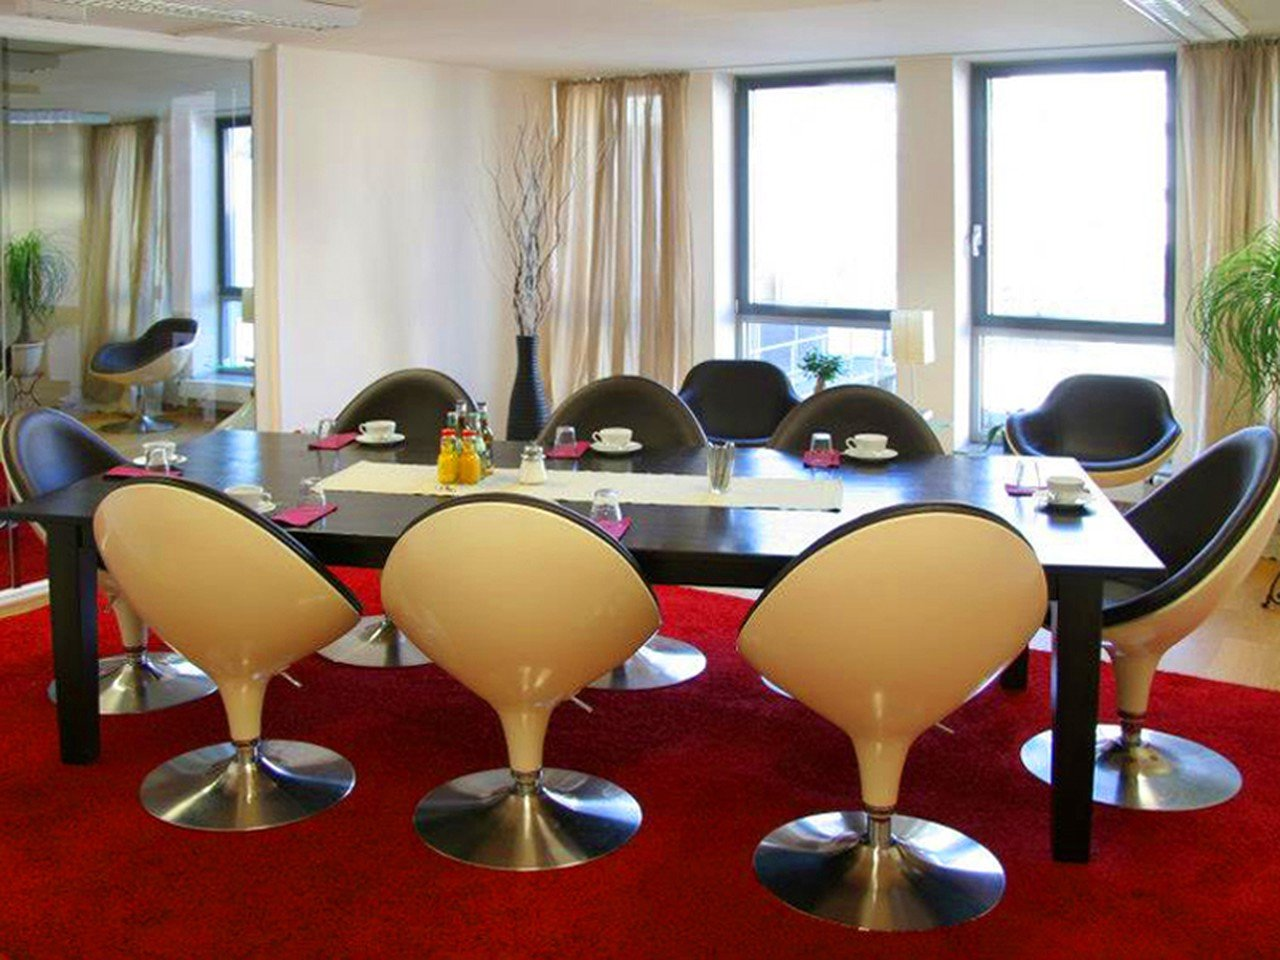 Köln conference rooms Meetingraum ACE International - GD 34 image 0